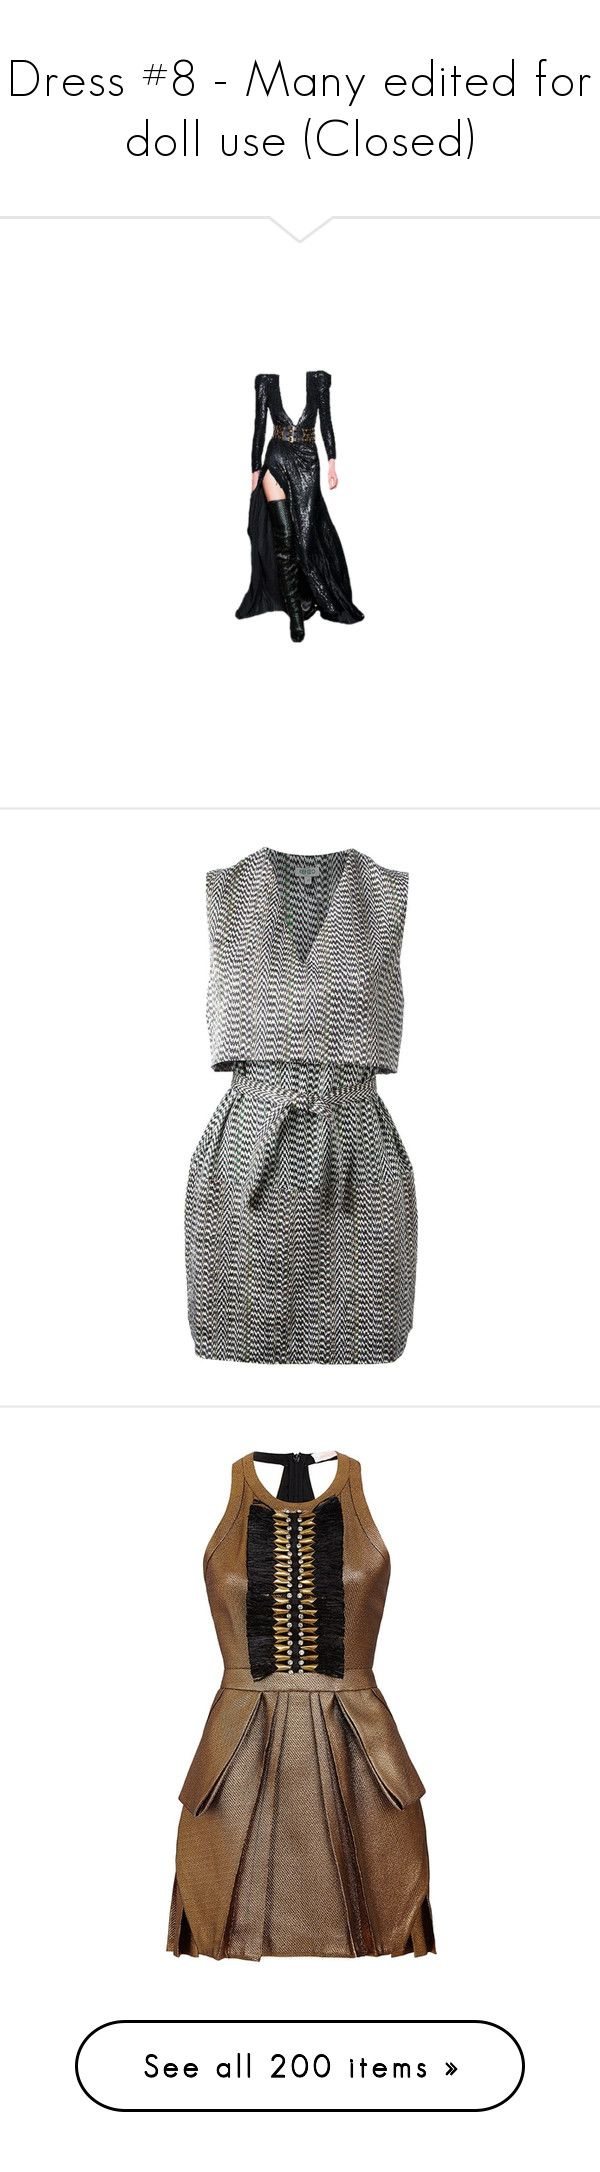 """""""Dress #8 - Many edited for doll use (Closed)"""" by mimi1207 ❤ liked on Polyvore featuring dolls, dresses, doll parts, gowns, body parts, vestidos, kenzo, white day dress, loose fitting dresses and white loose dress"""